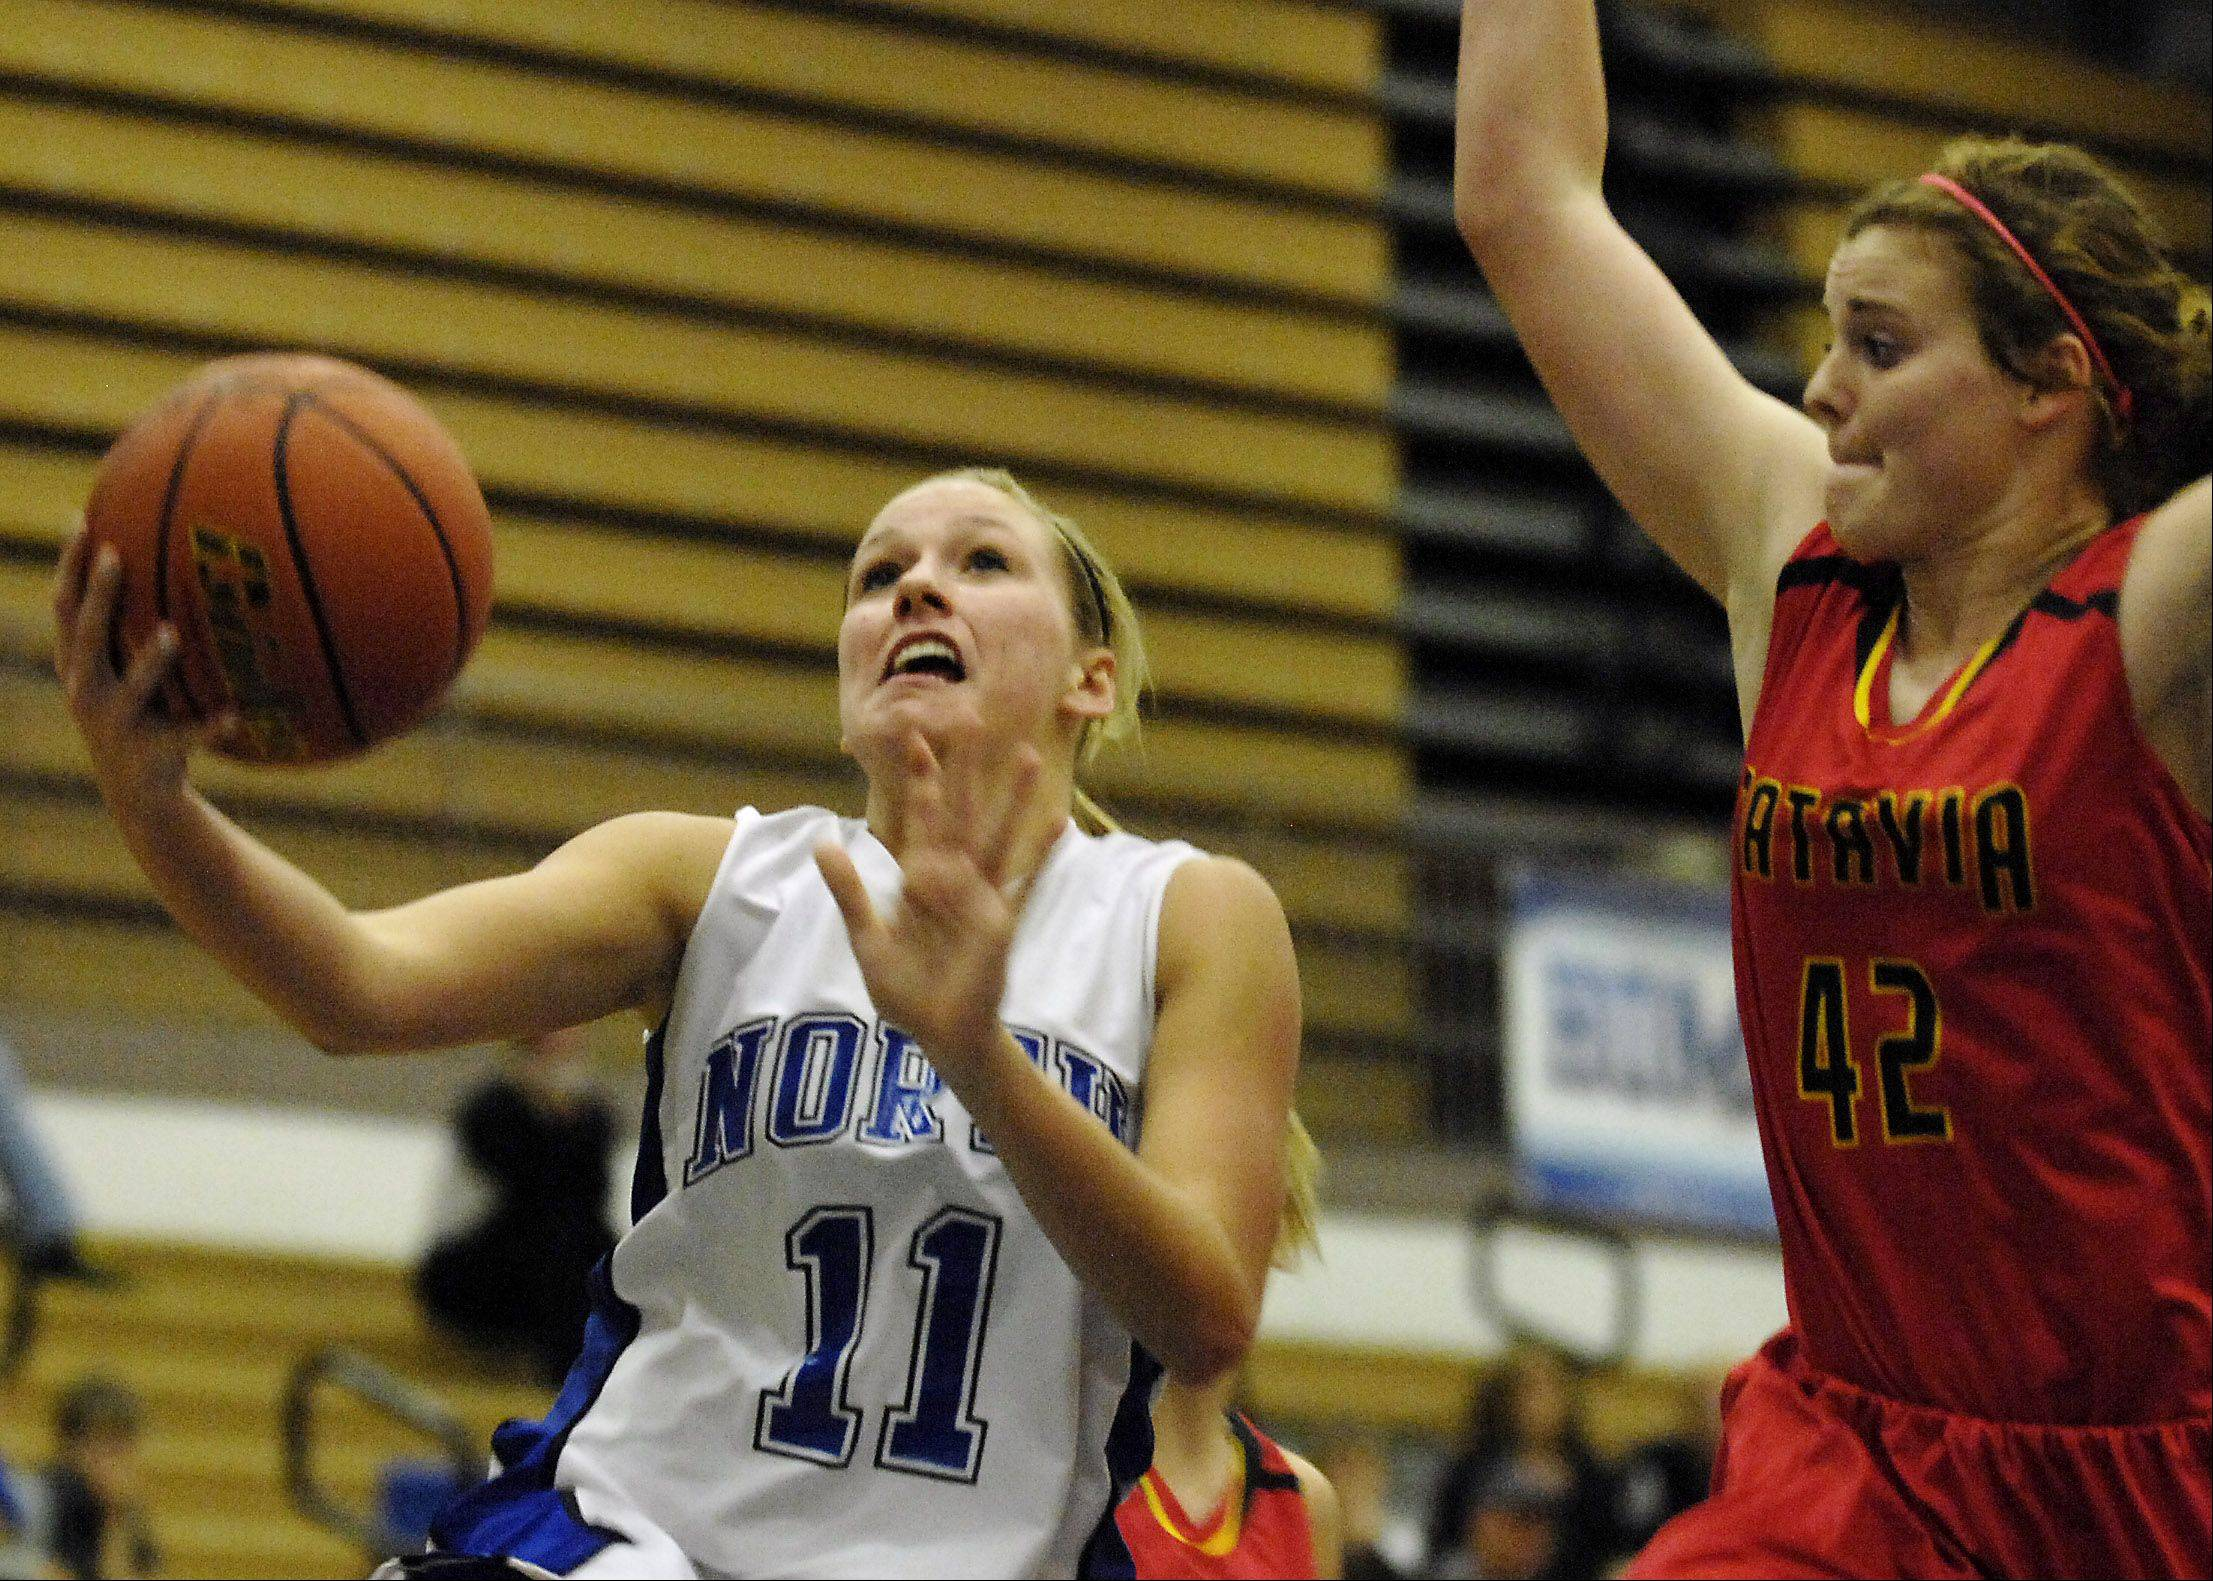 St. Charles North's Megan Booe drives to the basket with Batavia's Katie Ryan defending.